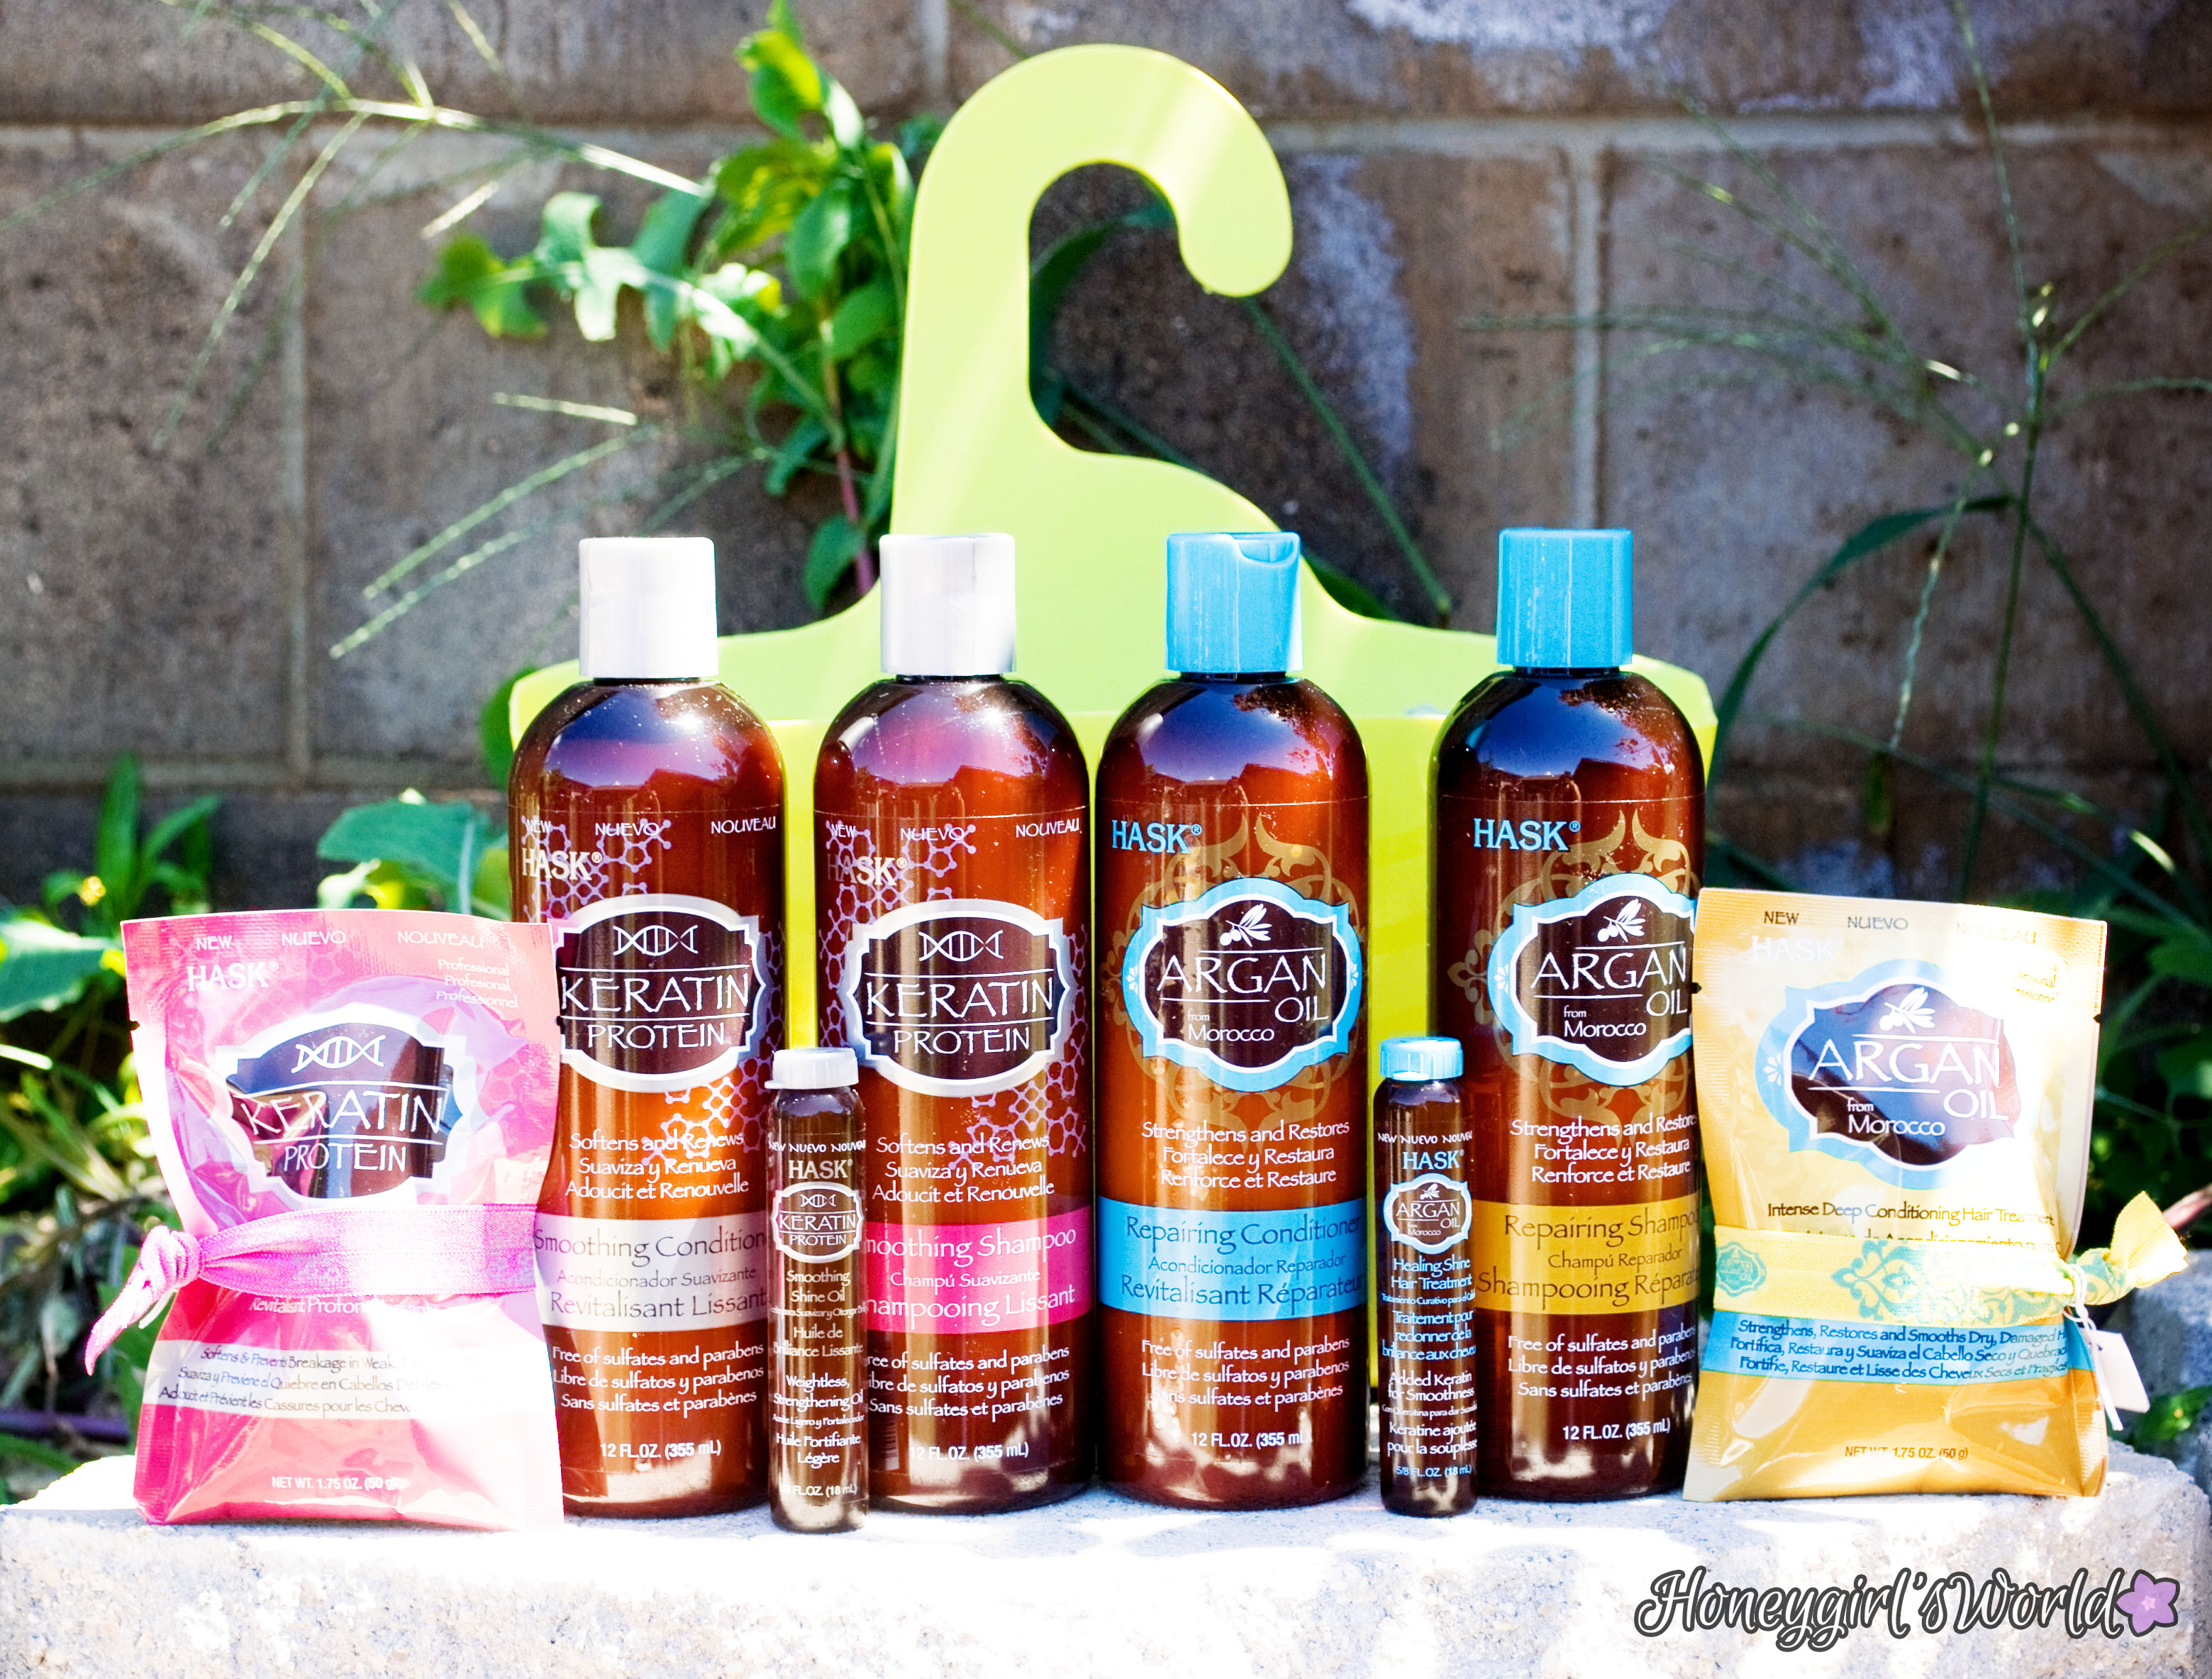 Hask Hair Products and Caddy